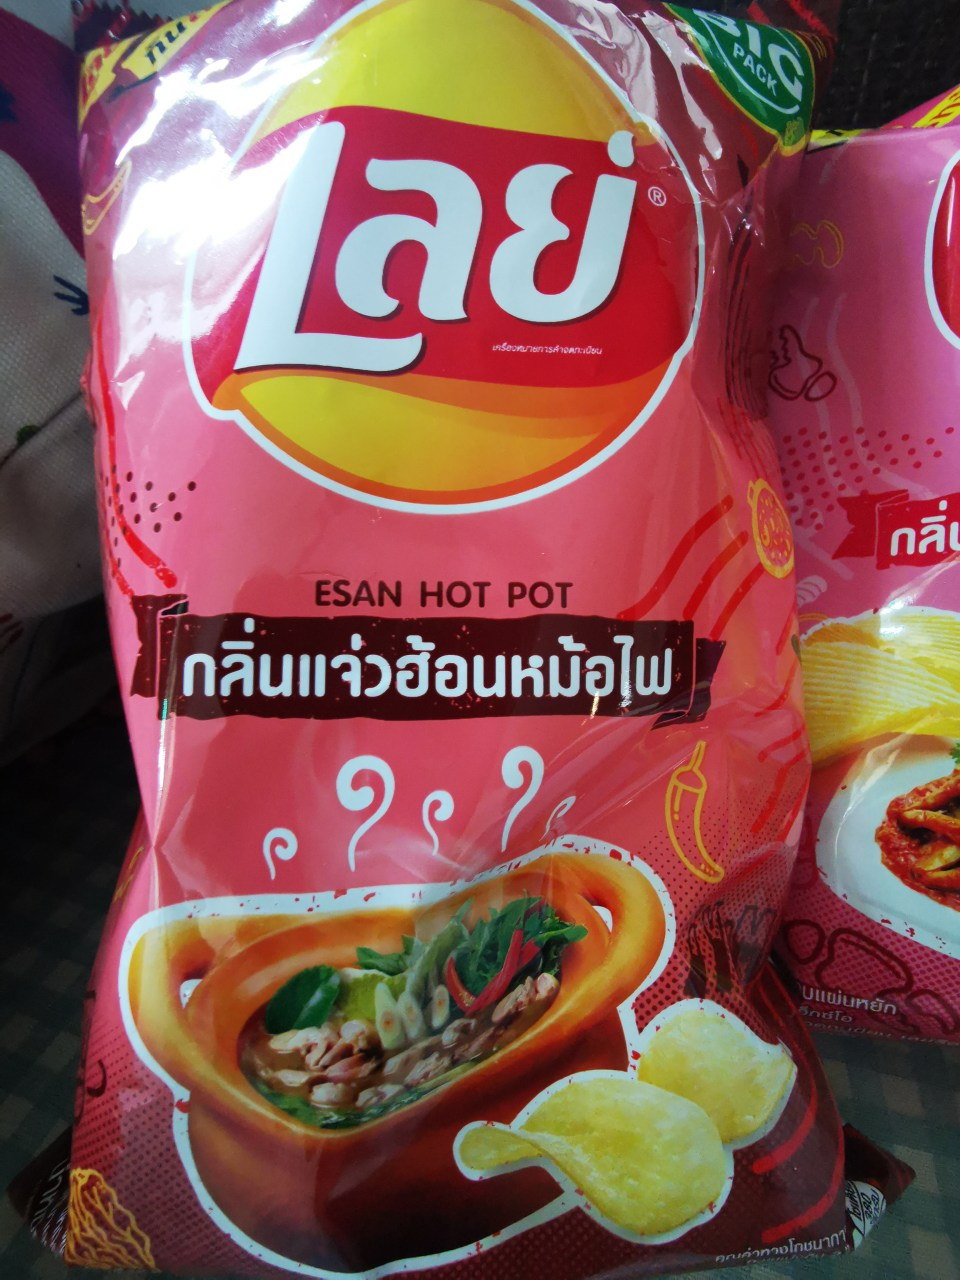 Lays chips Thailand